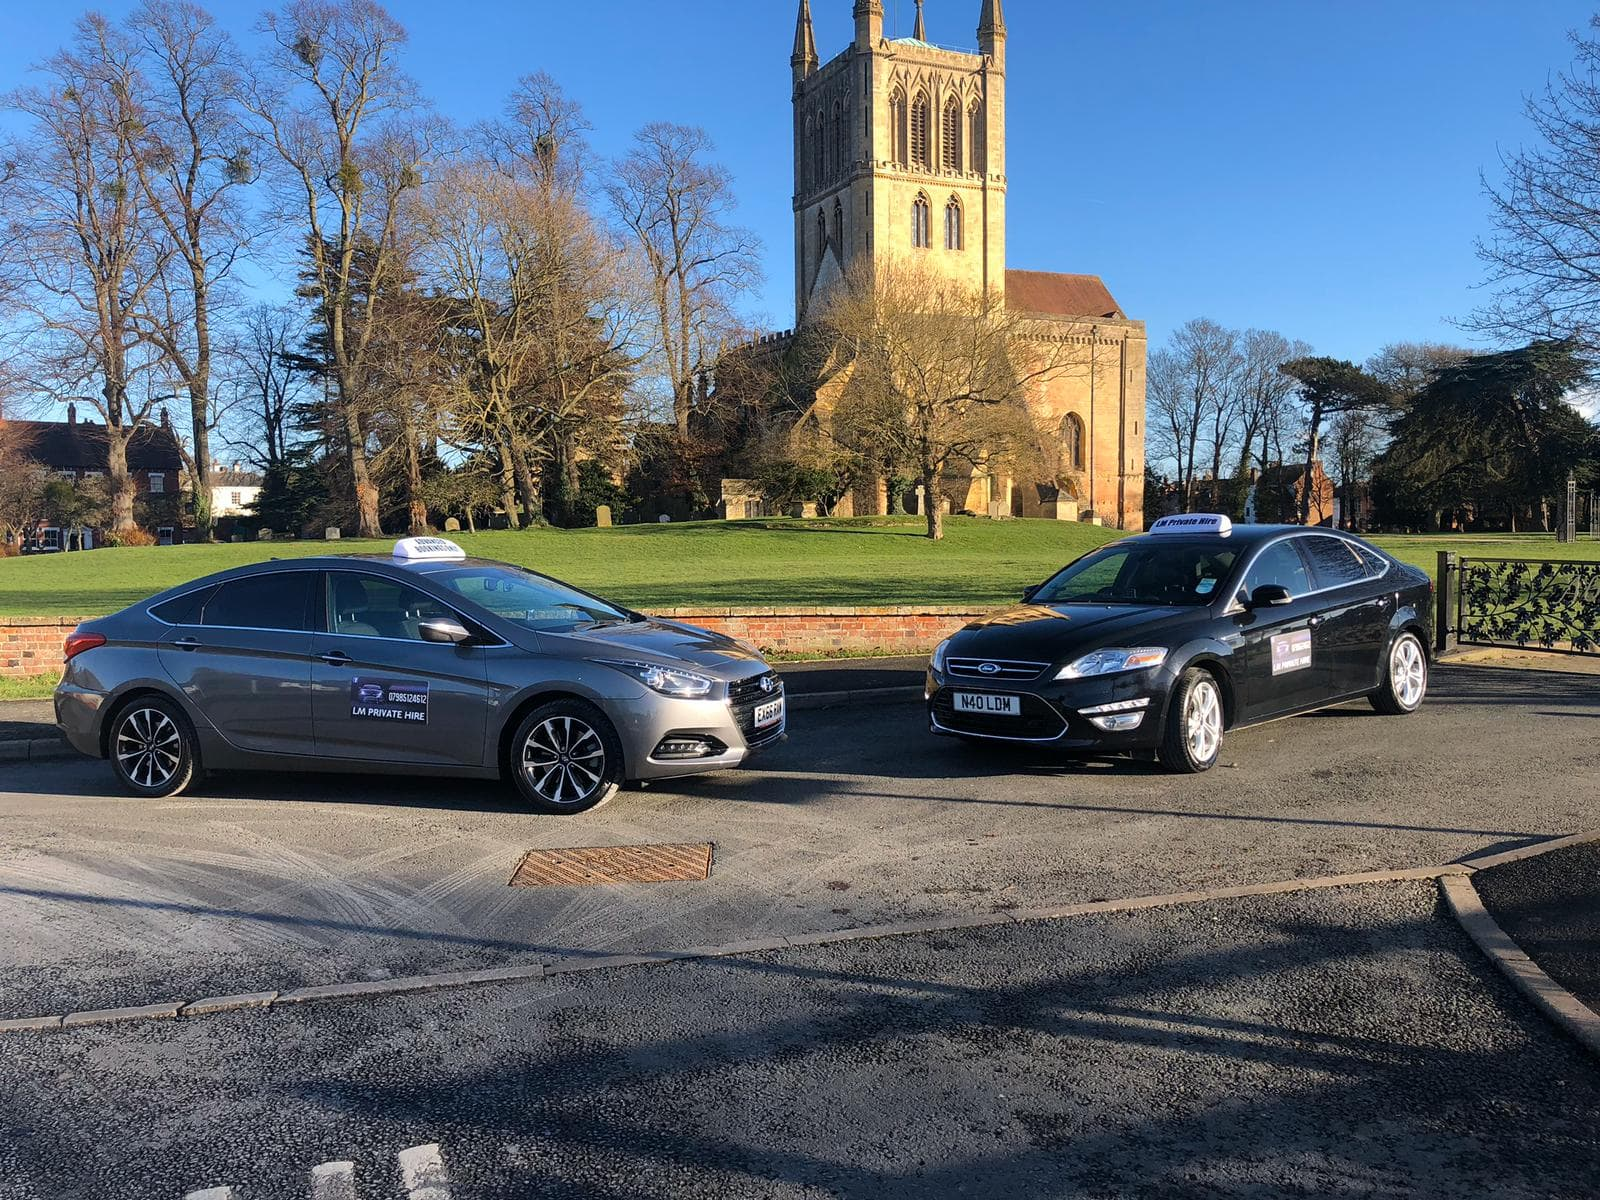 LM Private Hire Executive Saloons - Pershore taxi hire